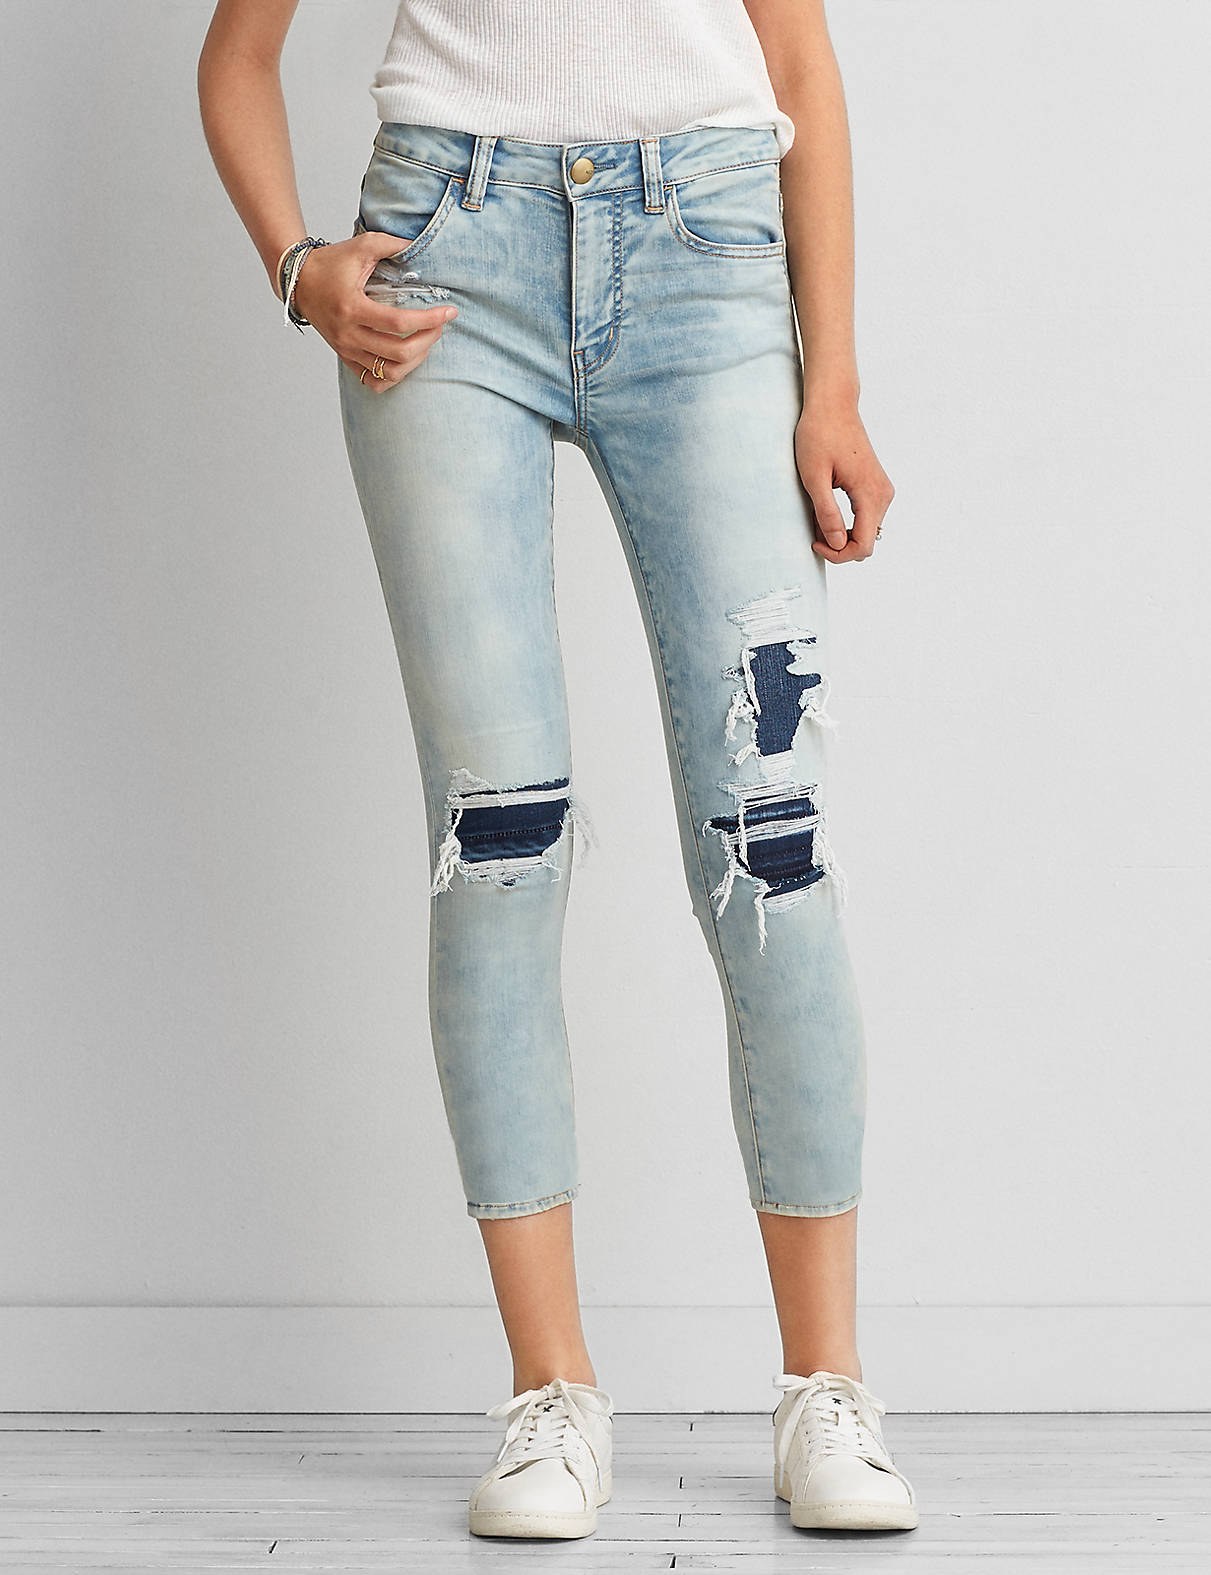 AEO Sateen X Hi-Rise Jegging Crop, Brilliant Repair | American Eagle Outfitters